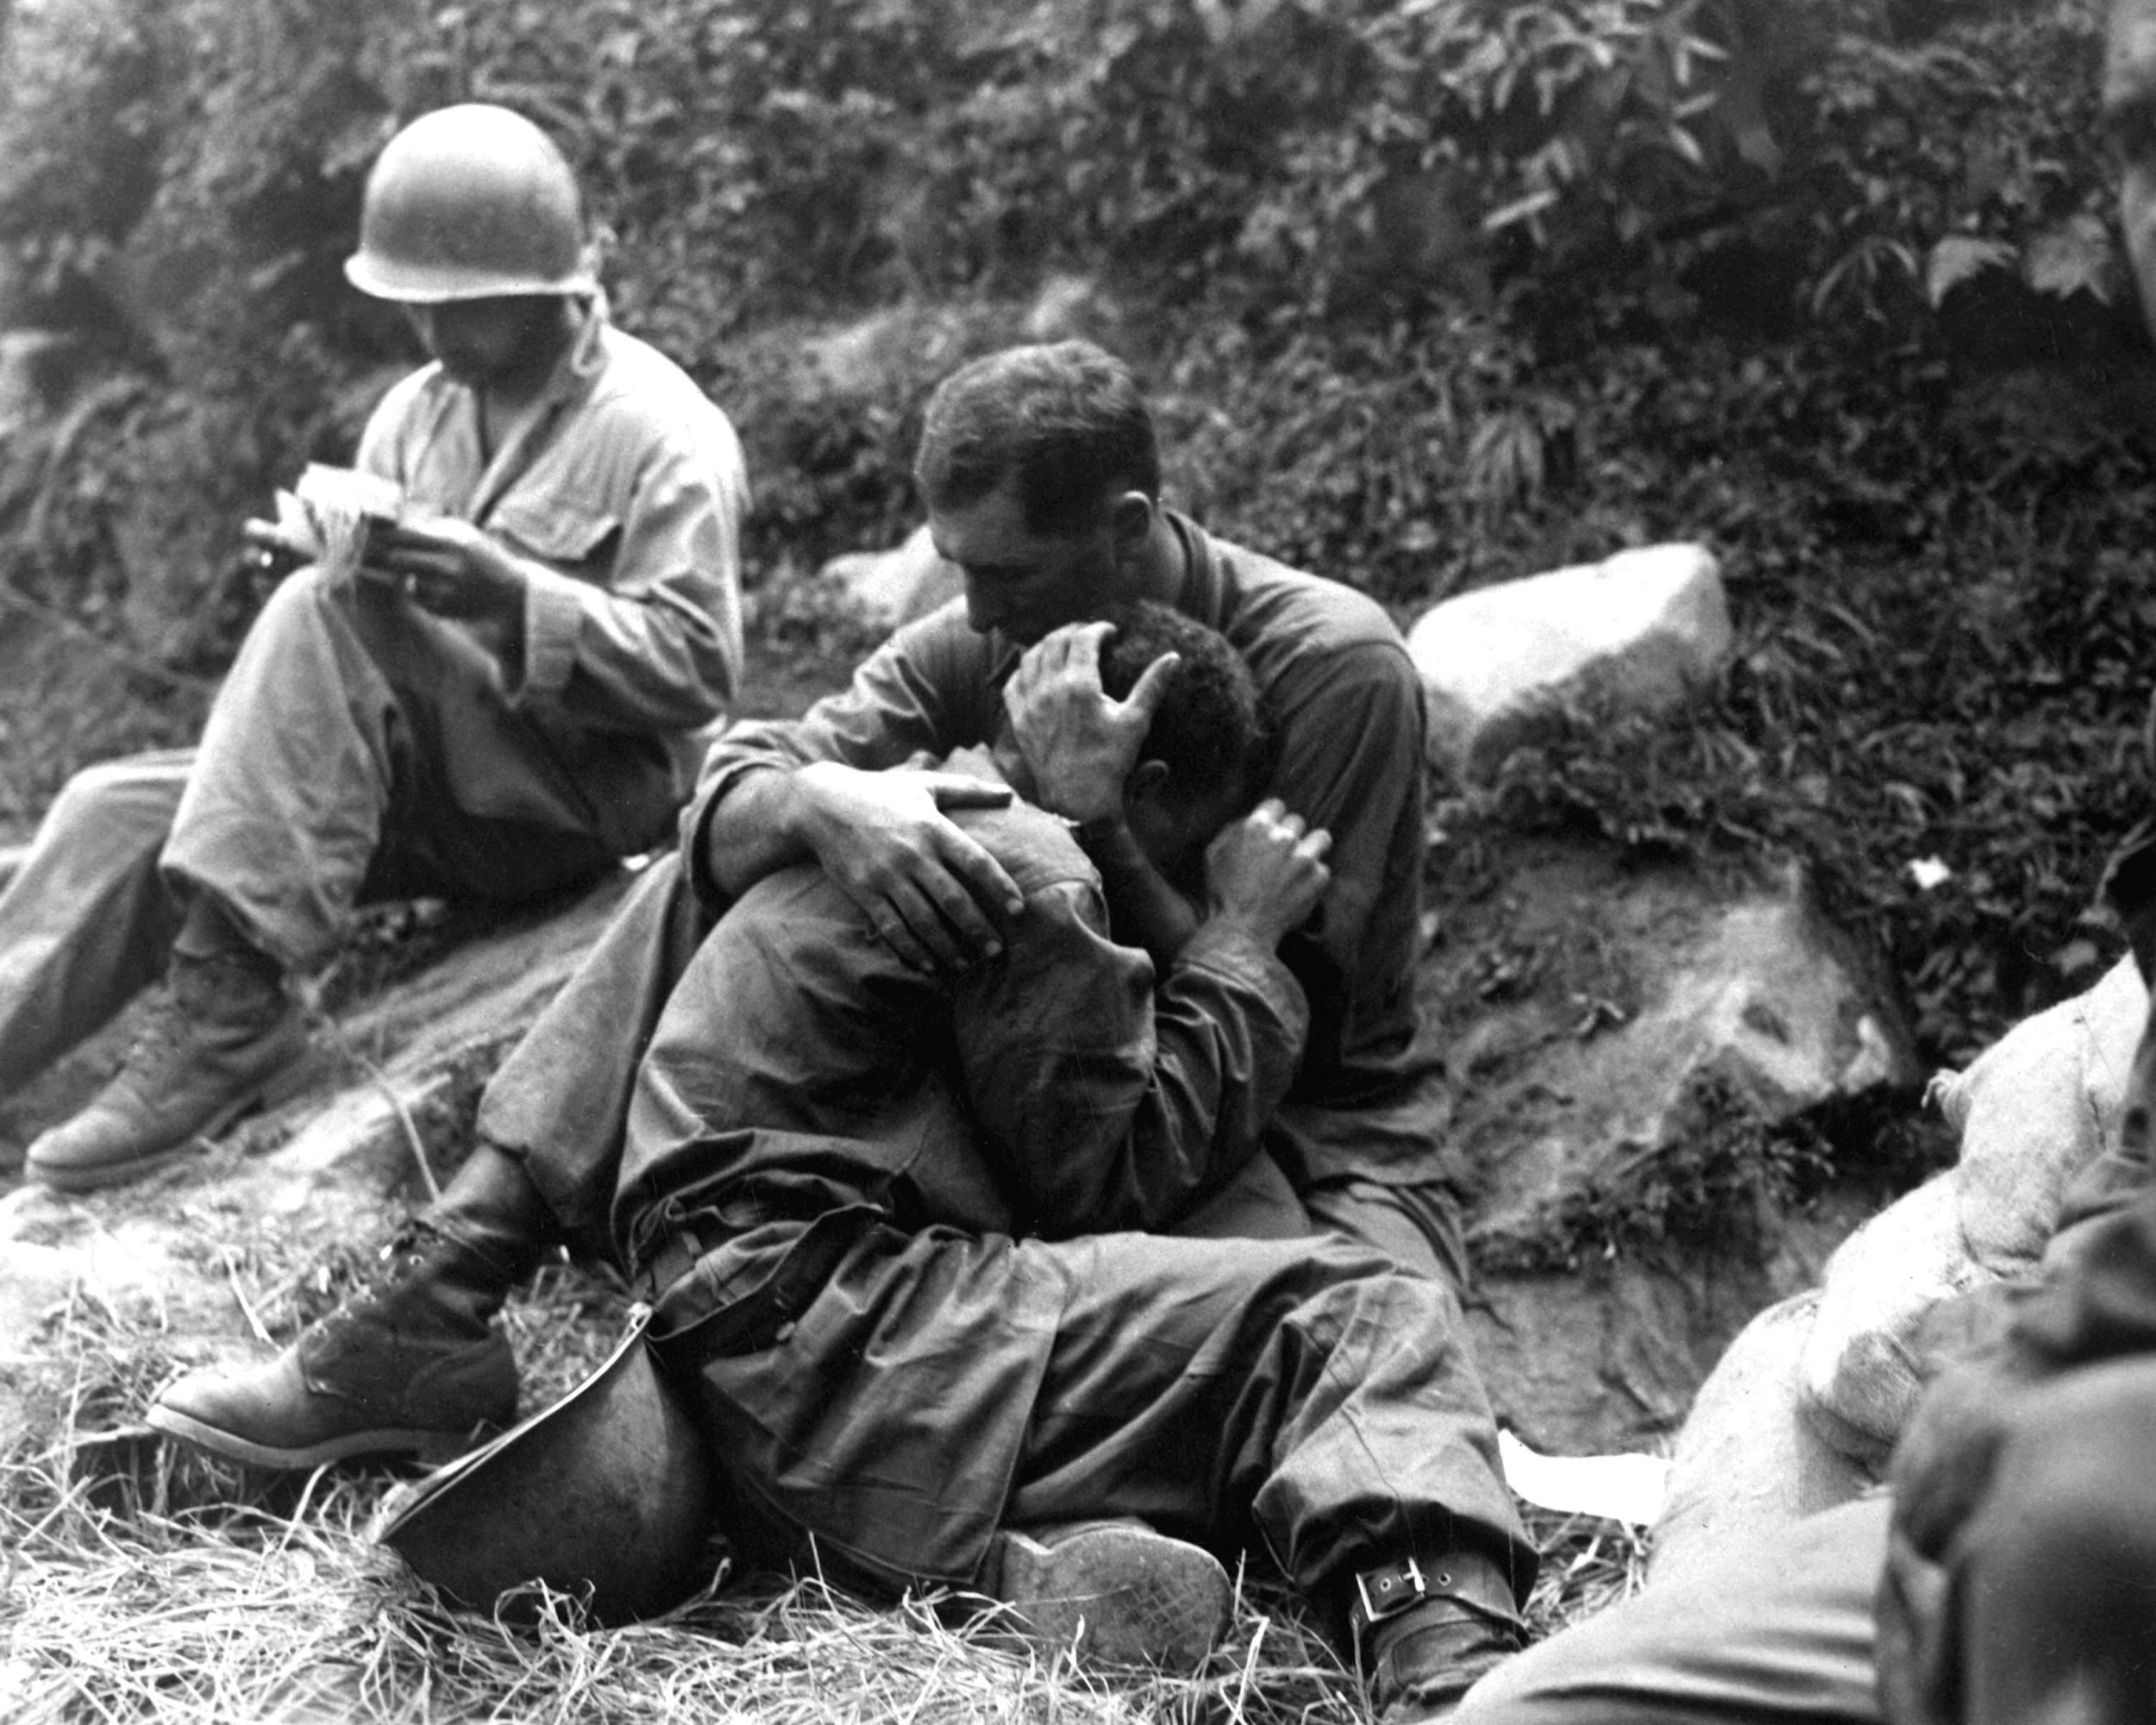 A grief stricken American infantryman whose friend has been killed in action is comforted by another soldier. In the background a corpsman methodically fills out casualty tags. Sfc. (SFC Al Chang/U.S. Army Photo)